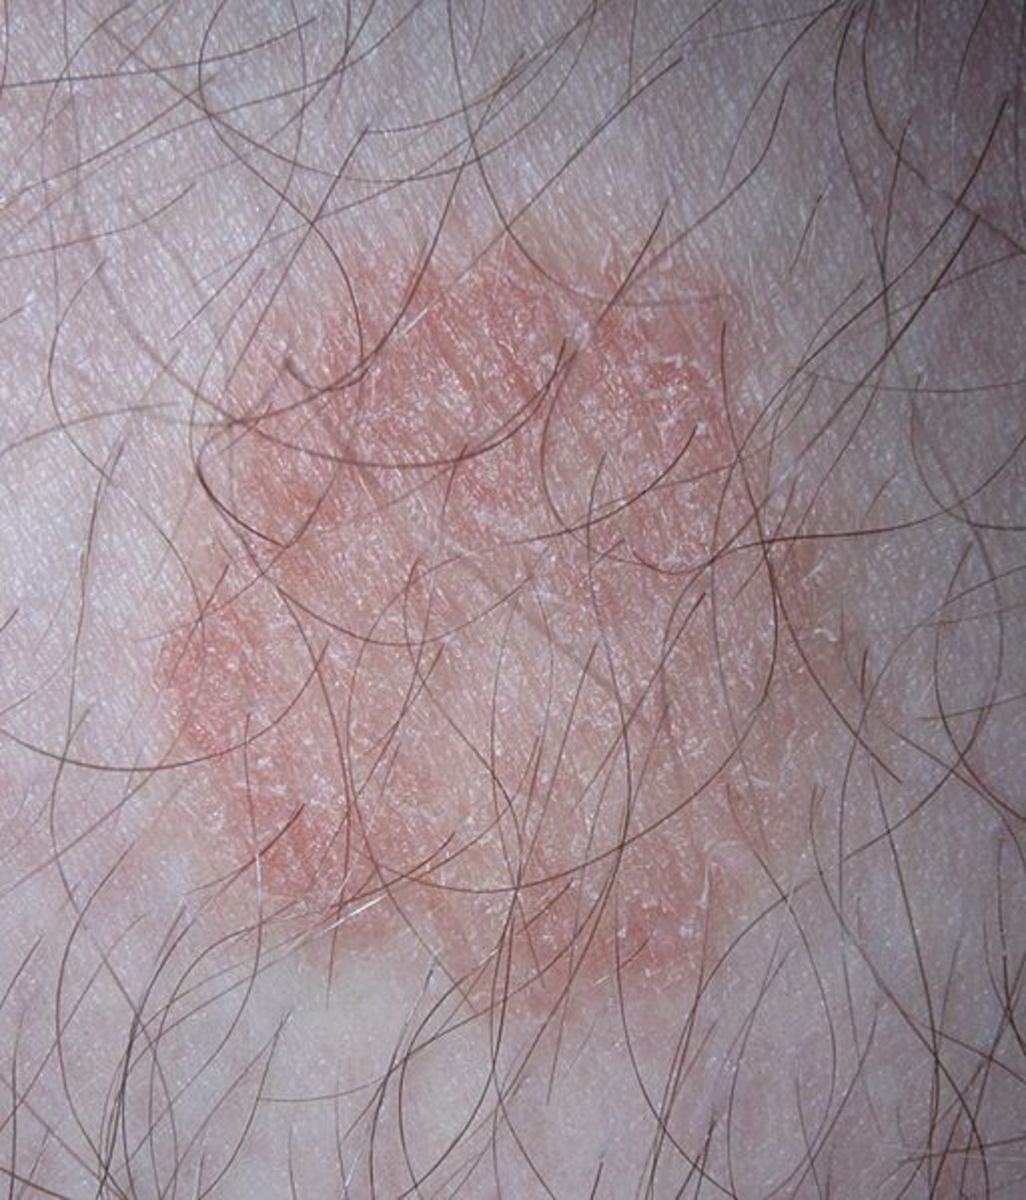 A Home Remedy for Ringworm That Works